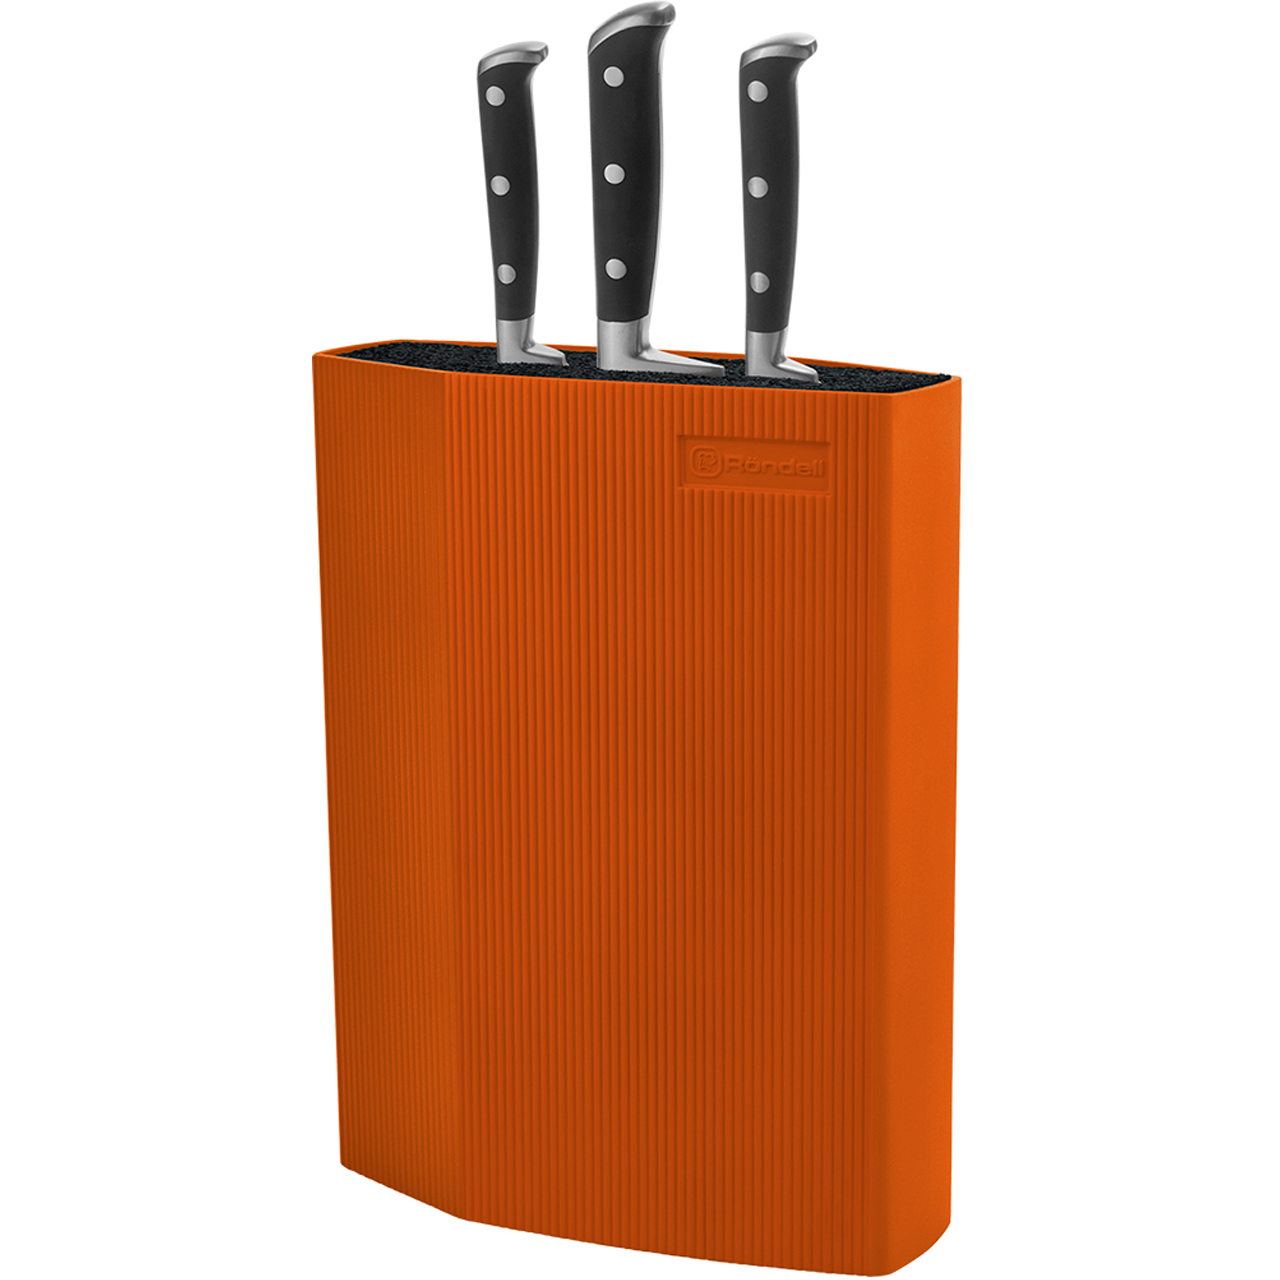 Stand for knives Rondell Orange RD-470 (Stand is made of ABS plastic with external plated SoftTouch, able to wash in the dishwasher, orange color) lo 17162003jn